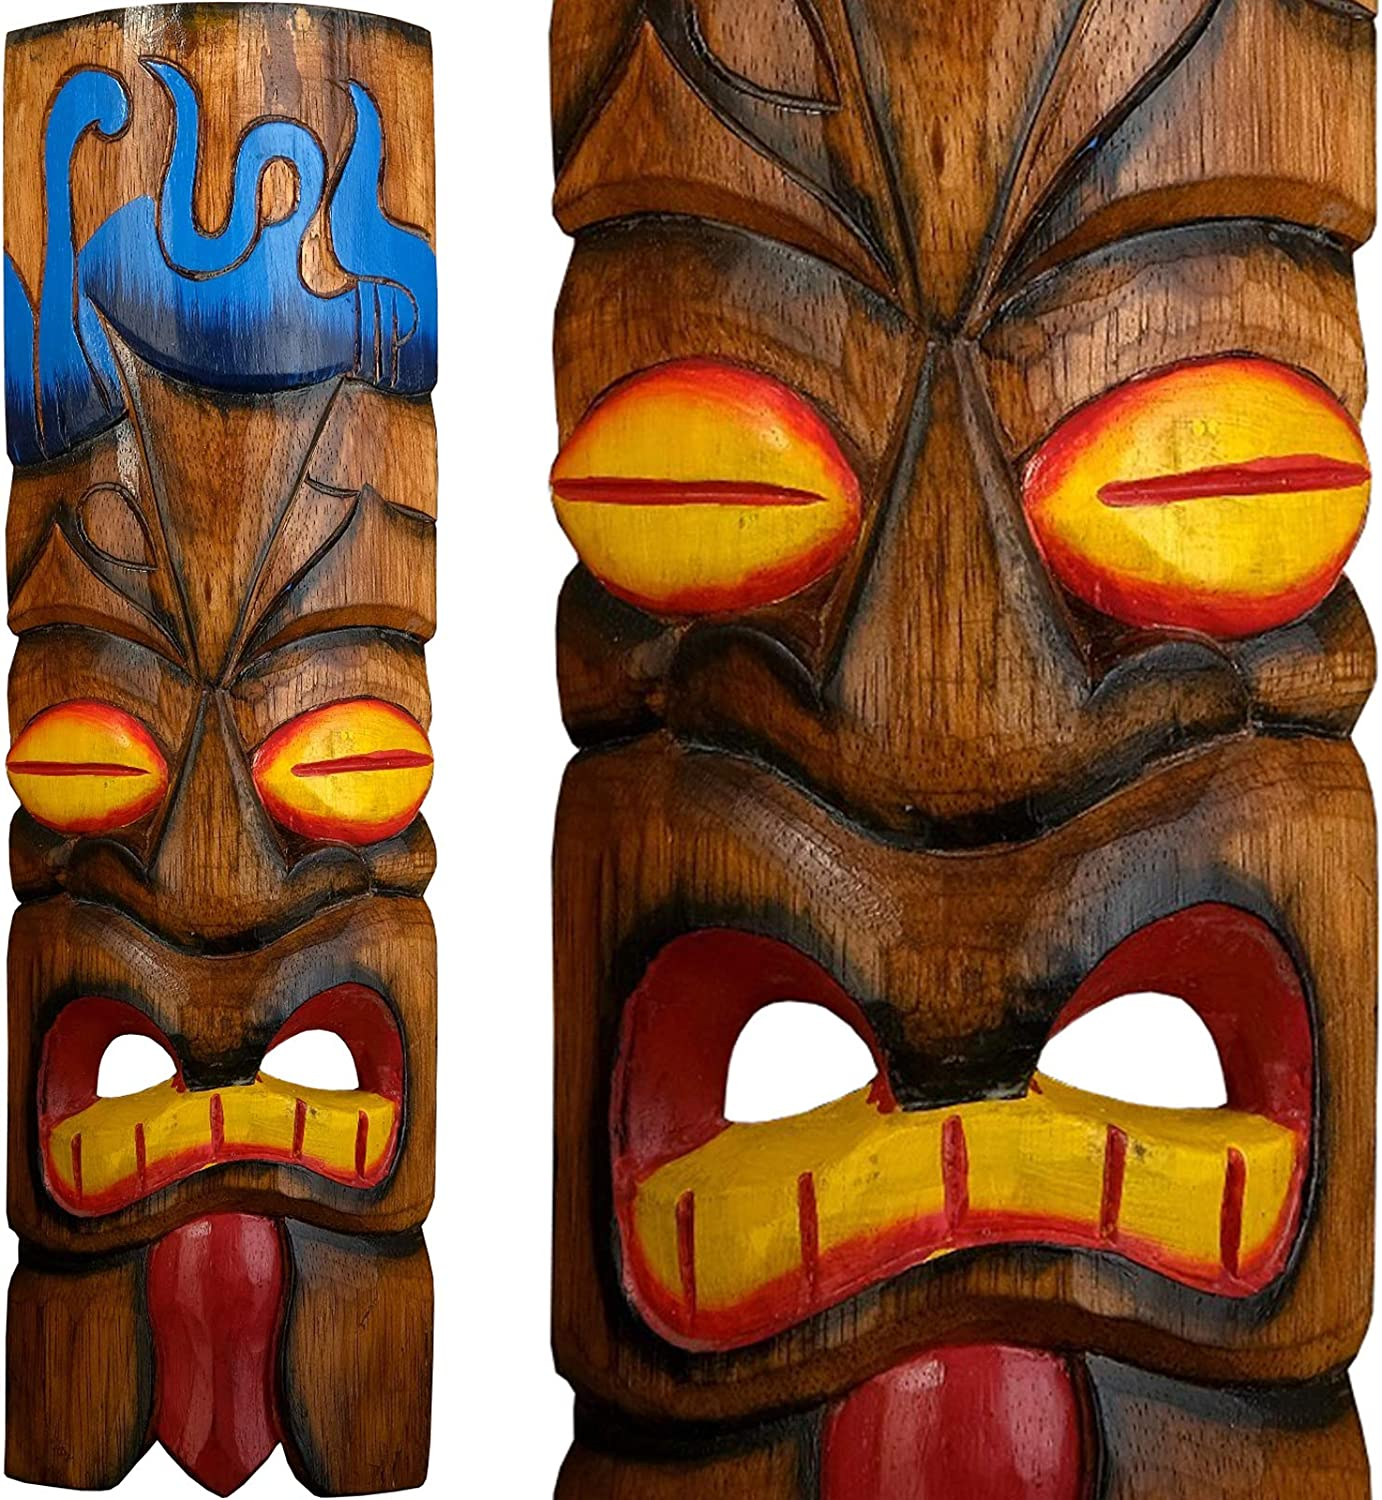 Hawaiian Tiki African Mask Aboriginal Style Hand Painted Wooden Mask Wall Hanging Decor African Decor - Bar Style Island Art Hand Carved Wood African Wall Decor Masks 20